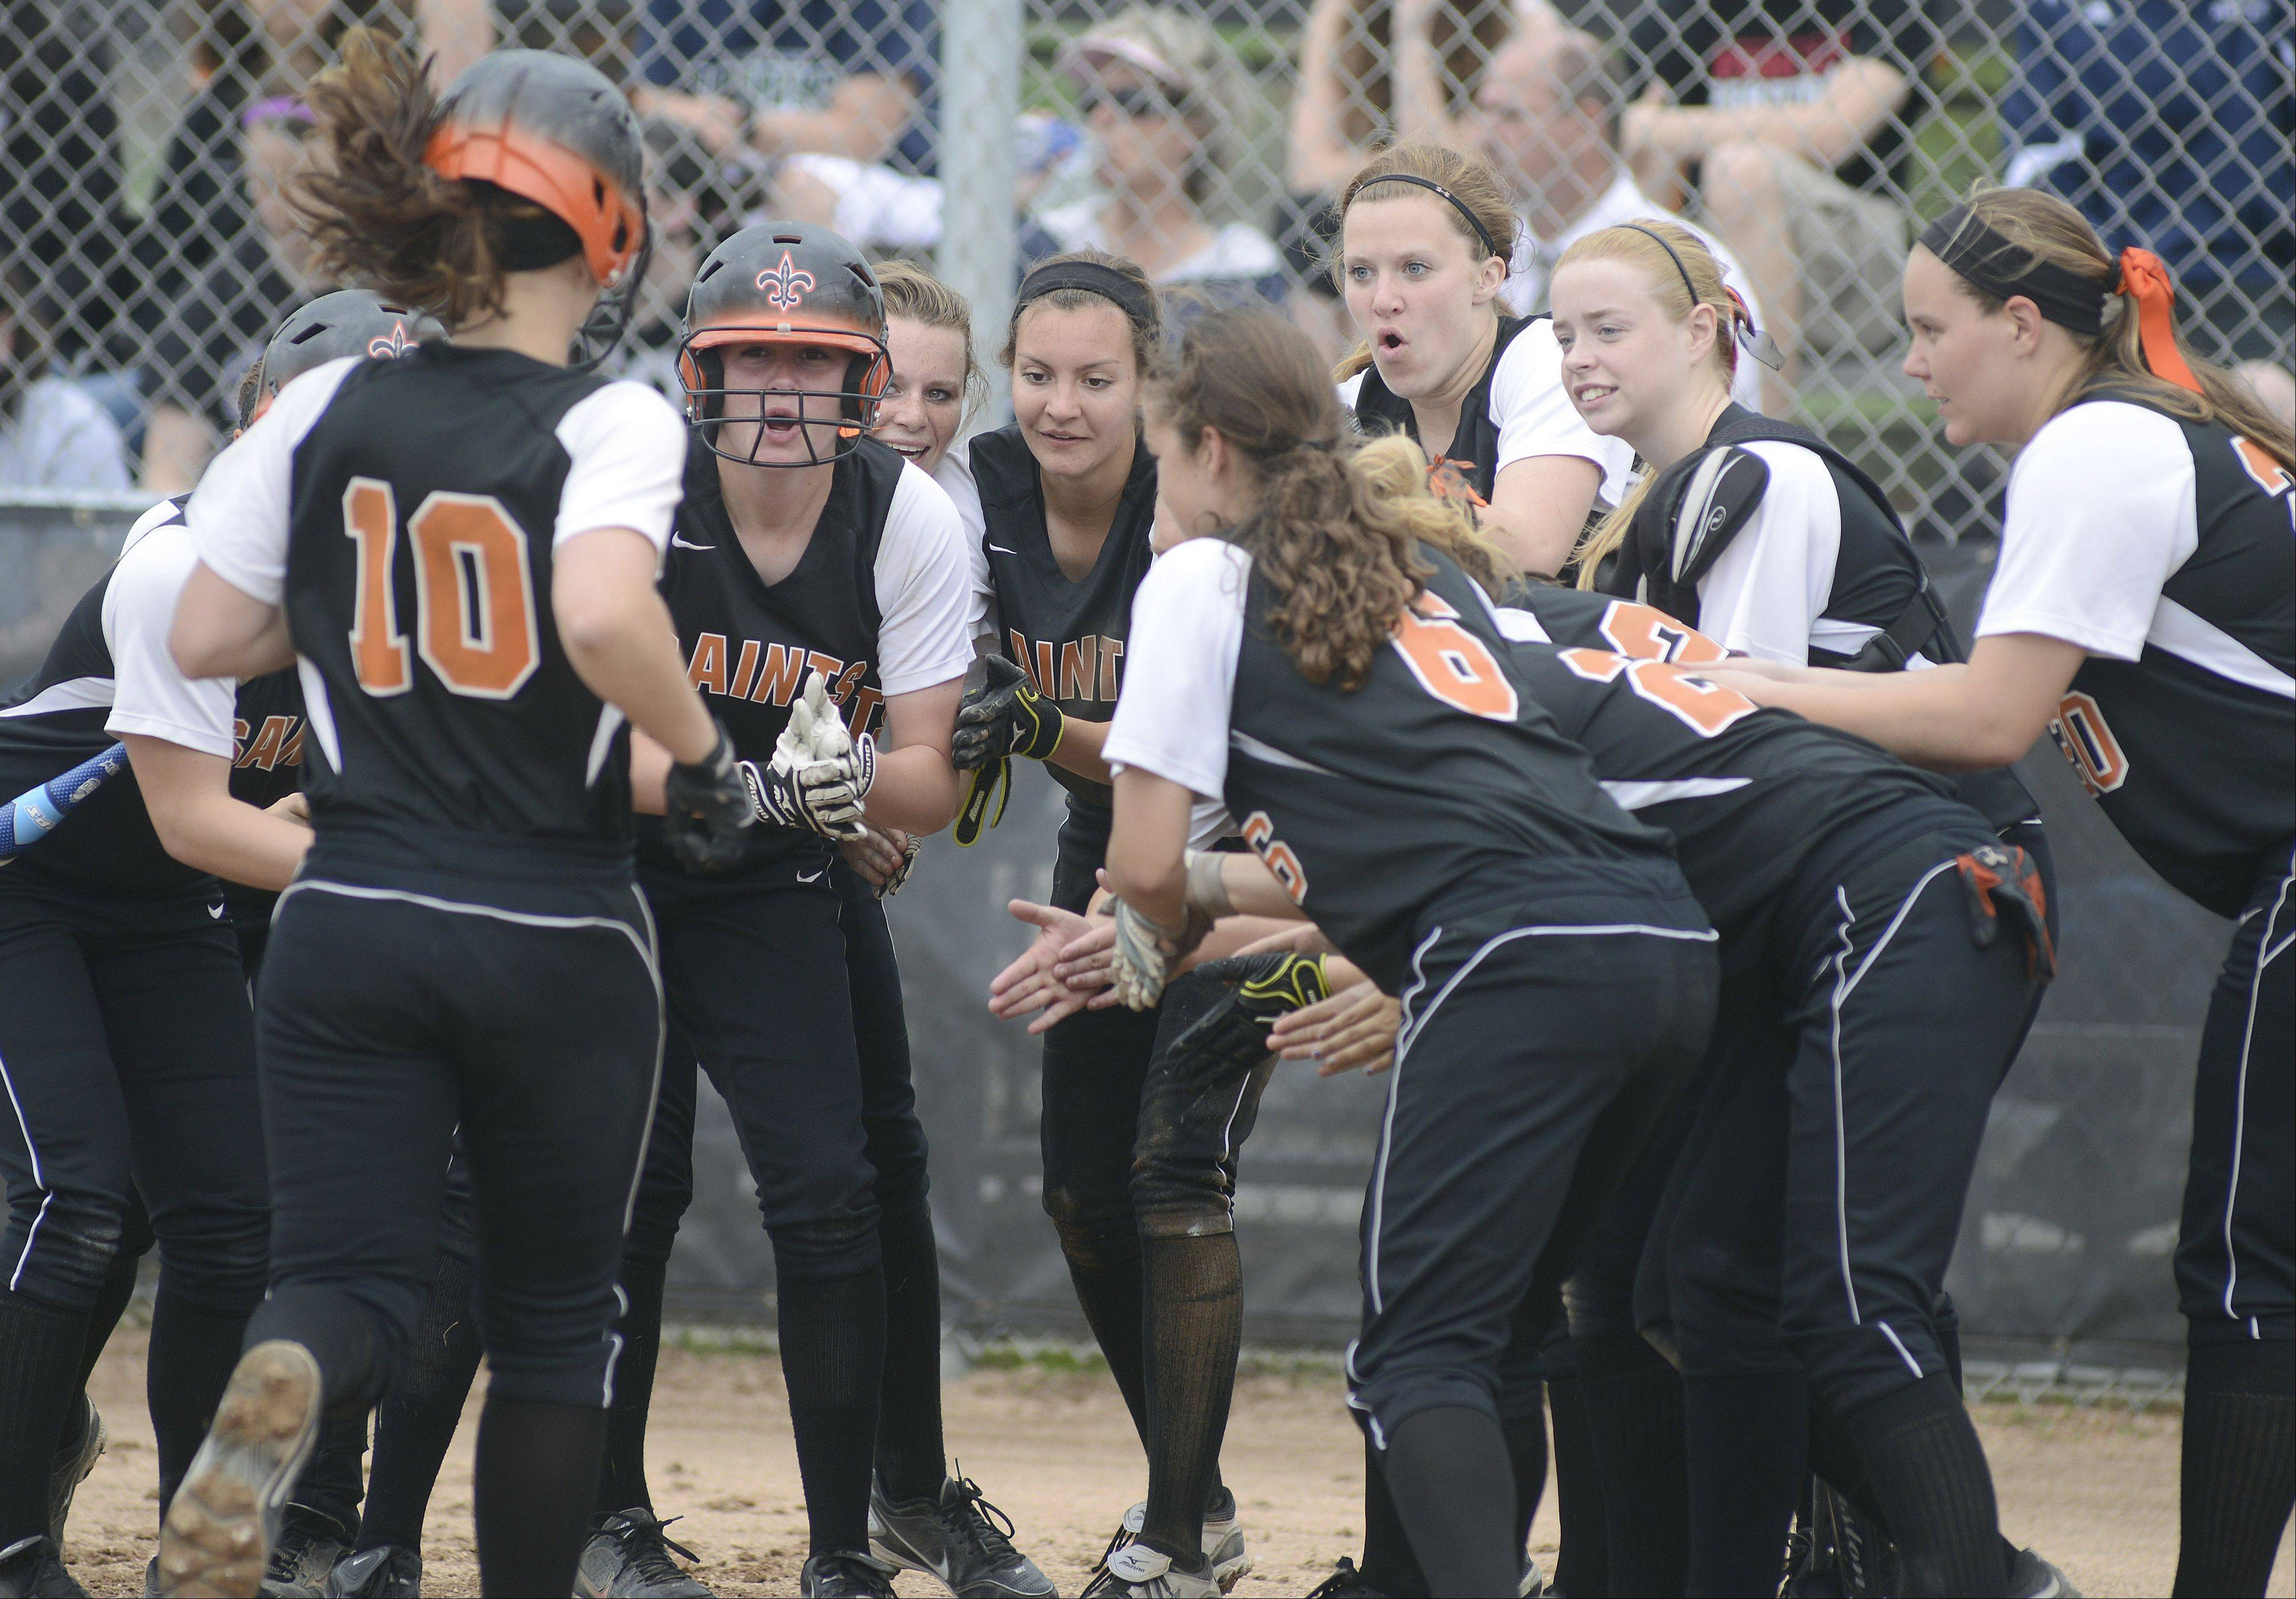 St. Charles East's Kate Peterburs is welcomed at home plate after hitting a home run in the first inning of the Class 4A sectional on Tuesday.